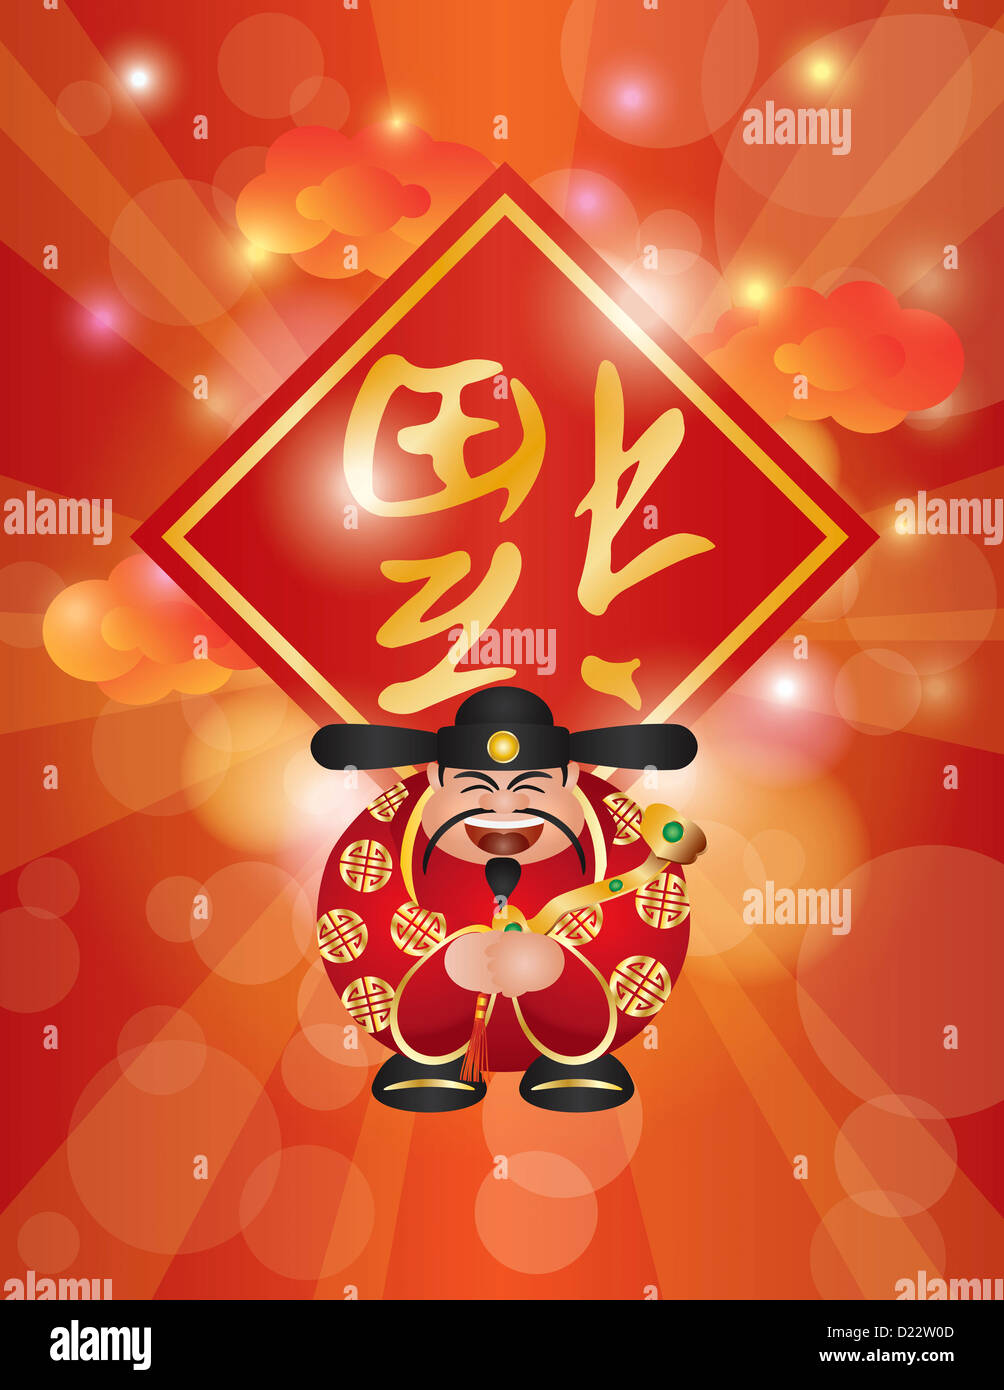 Happy chinese new year money god holding a wish wand welcoming happy chinese new year money god holding a wish wand welcoming happiness good health luck and prosperity on festive background biocorpaavc Gallery